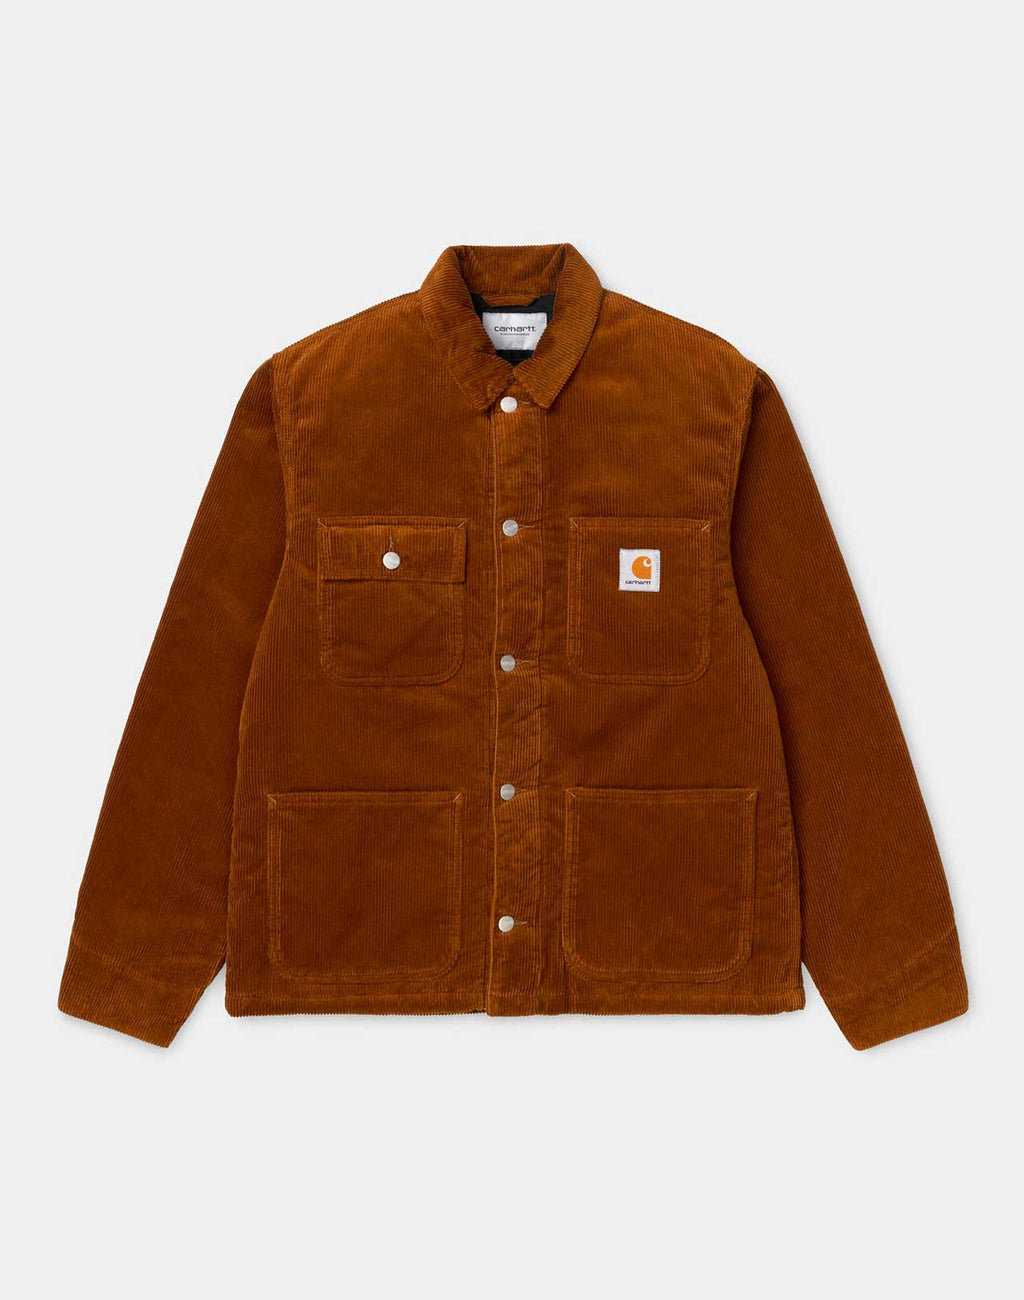 Veste Michigan en velours côtelé Brandy Rinsed Carhartt